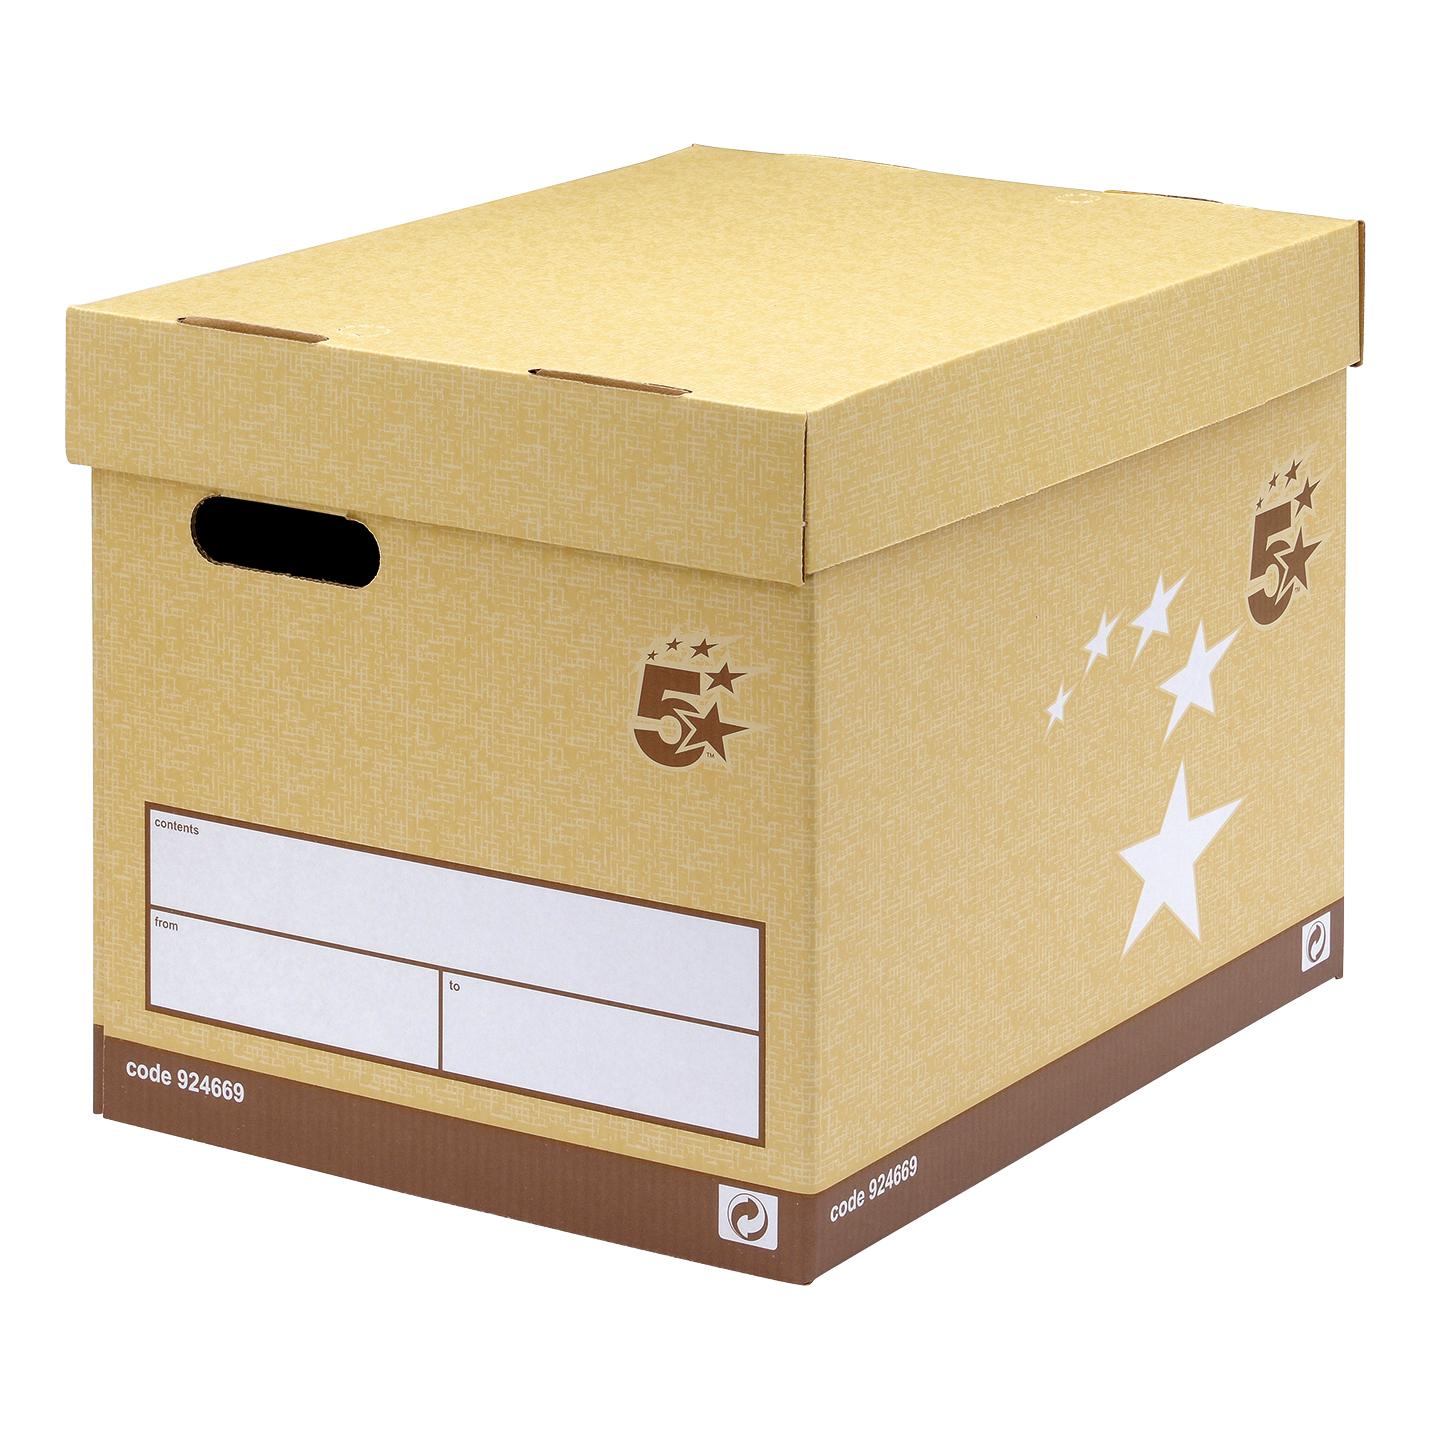 5 Star Elite Superstrong Archive Storage Box Foolscap Sand FSC Pack 10